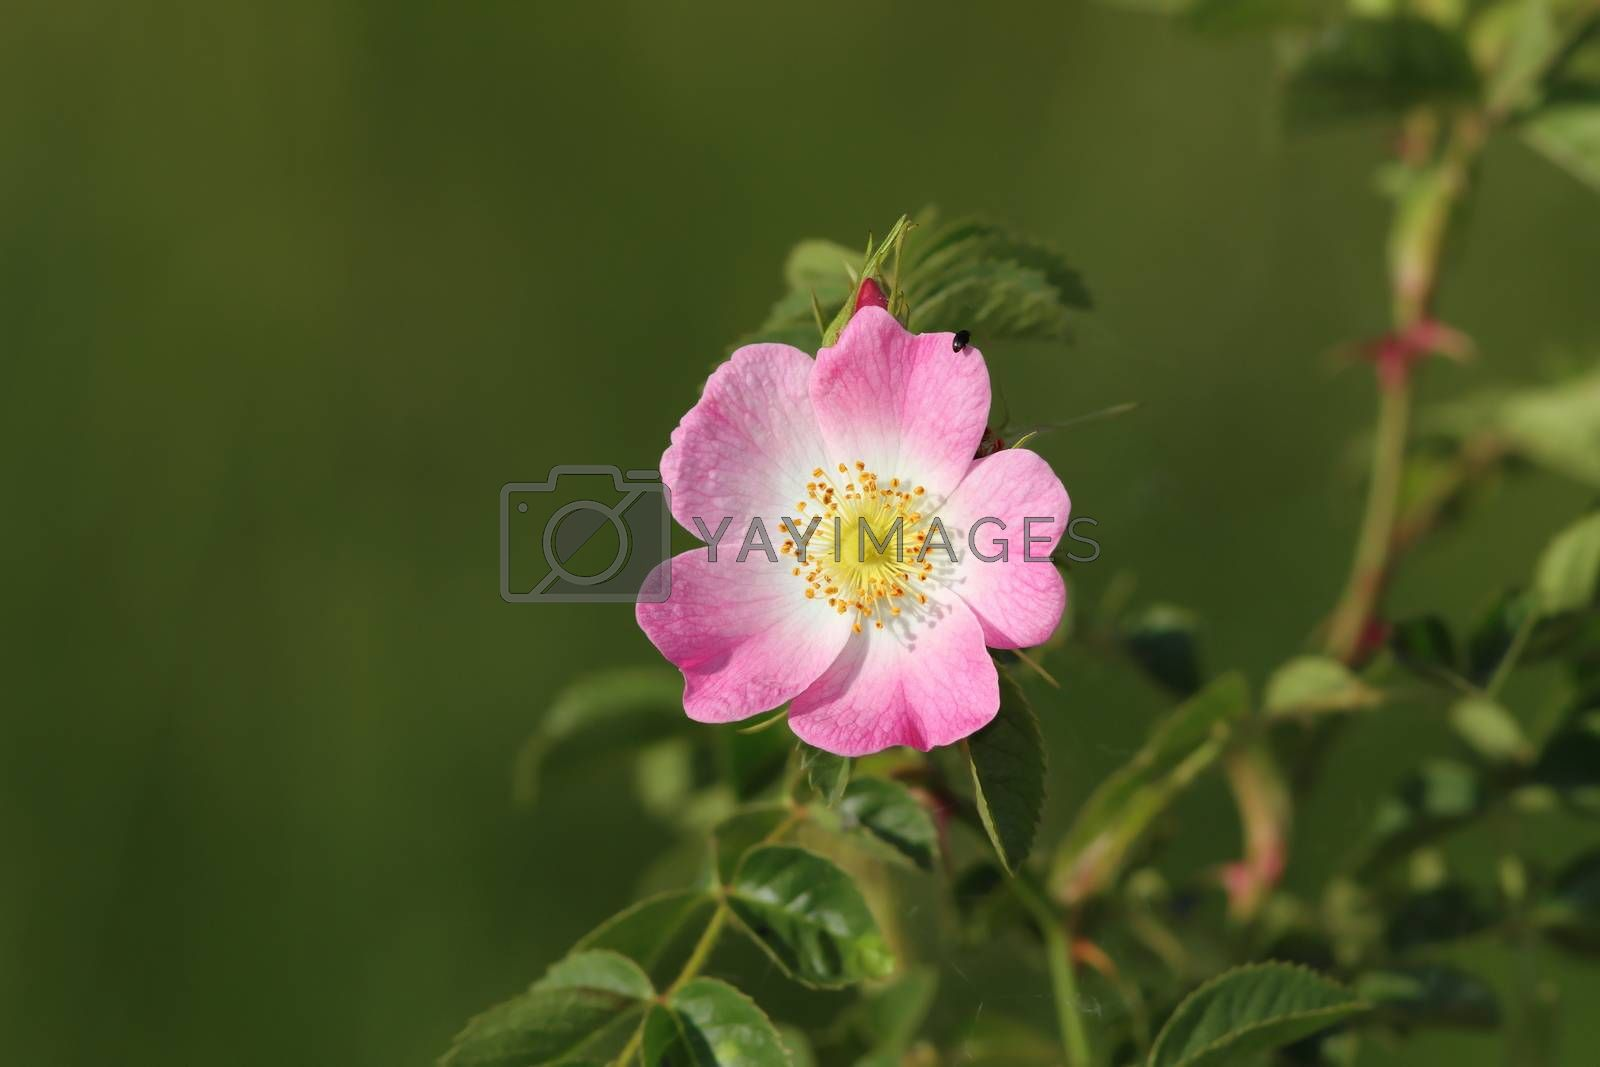 Royalty free image of dog rose wild flower by taviphoto